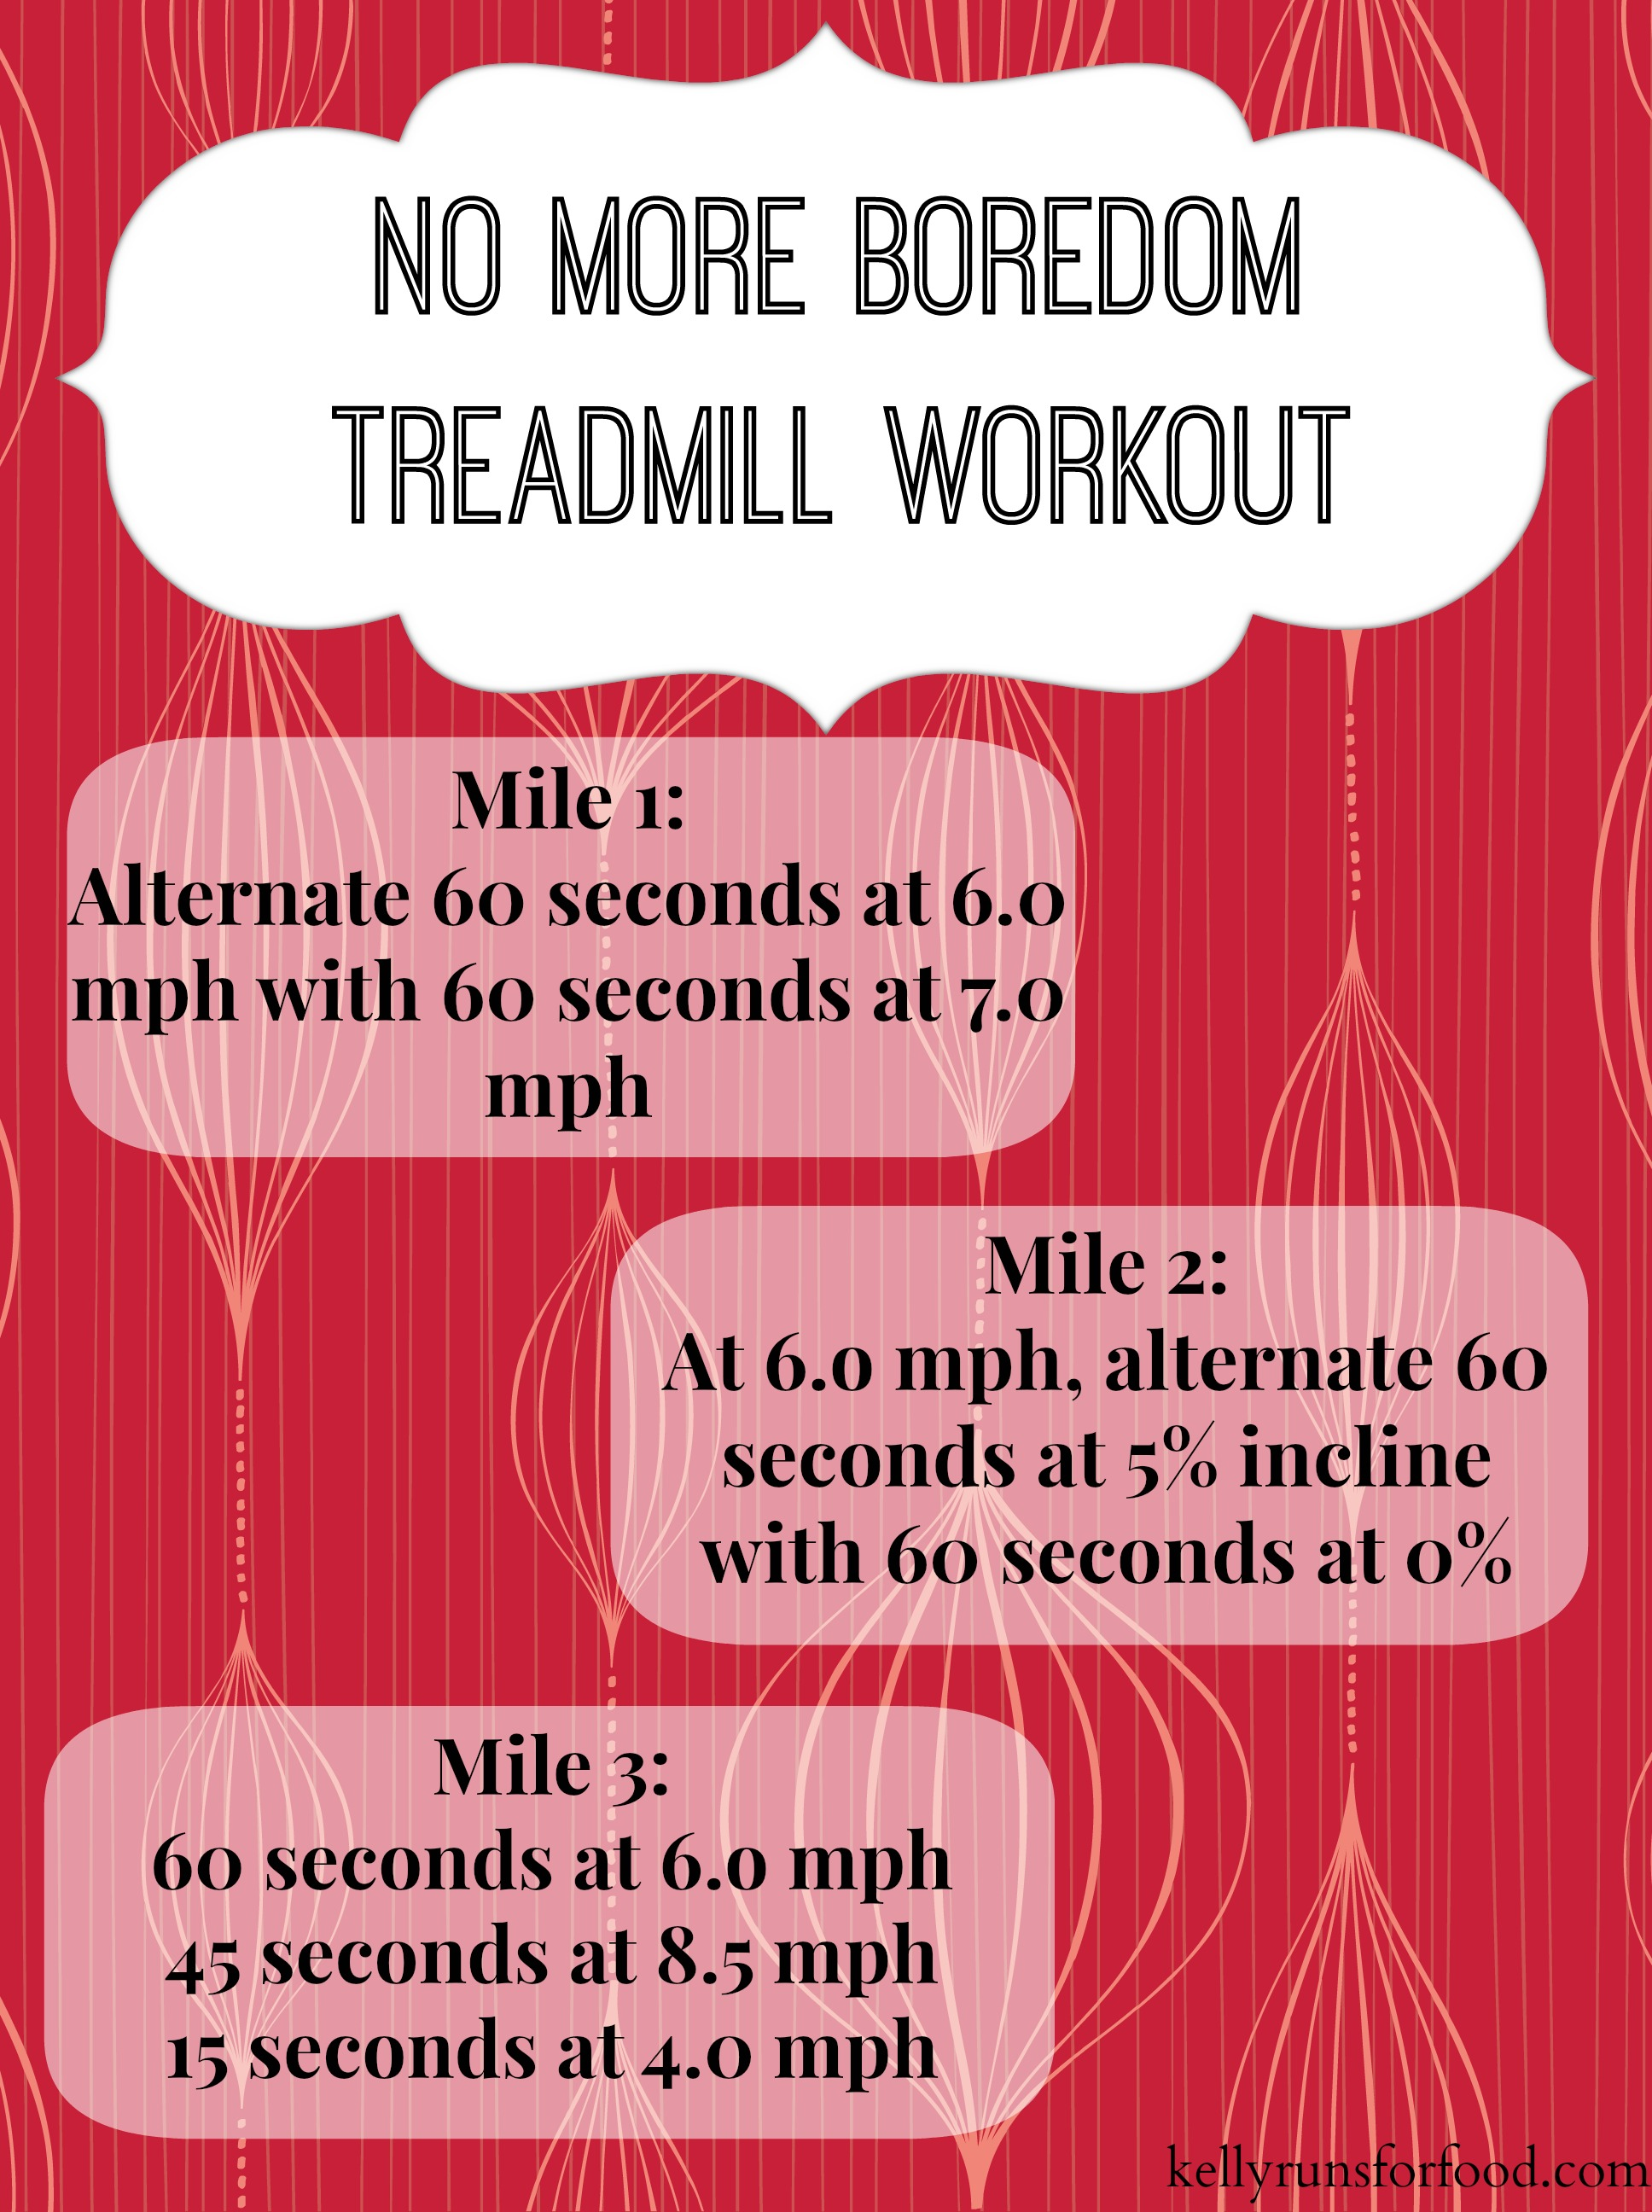 No more bordedom treadmill workout